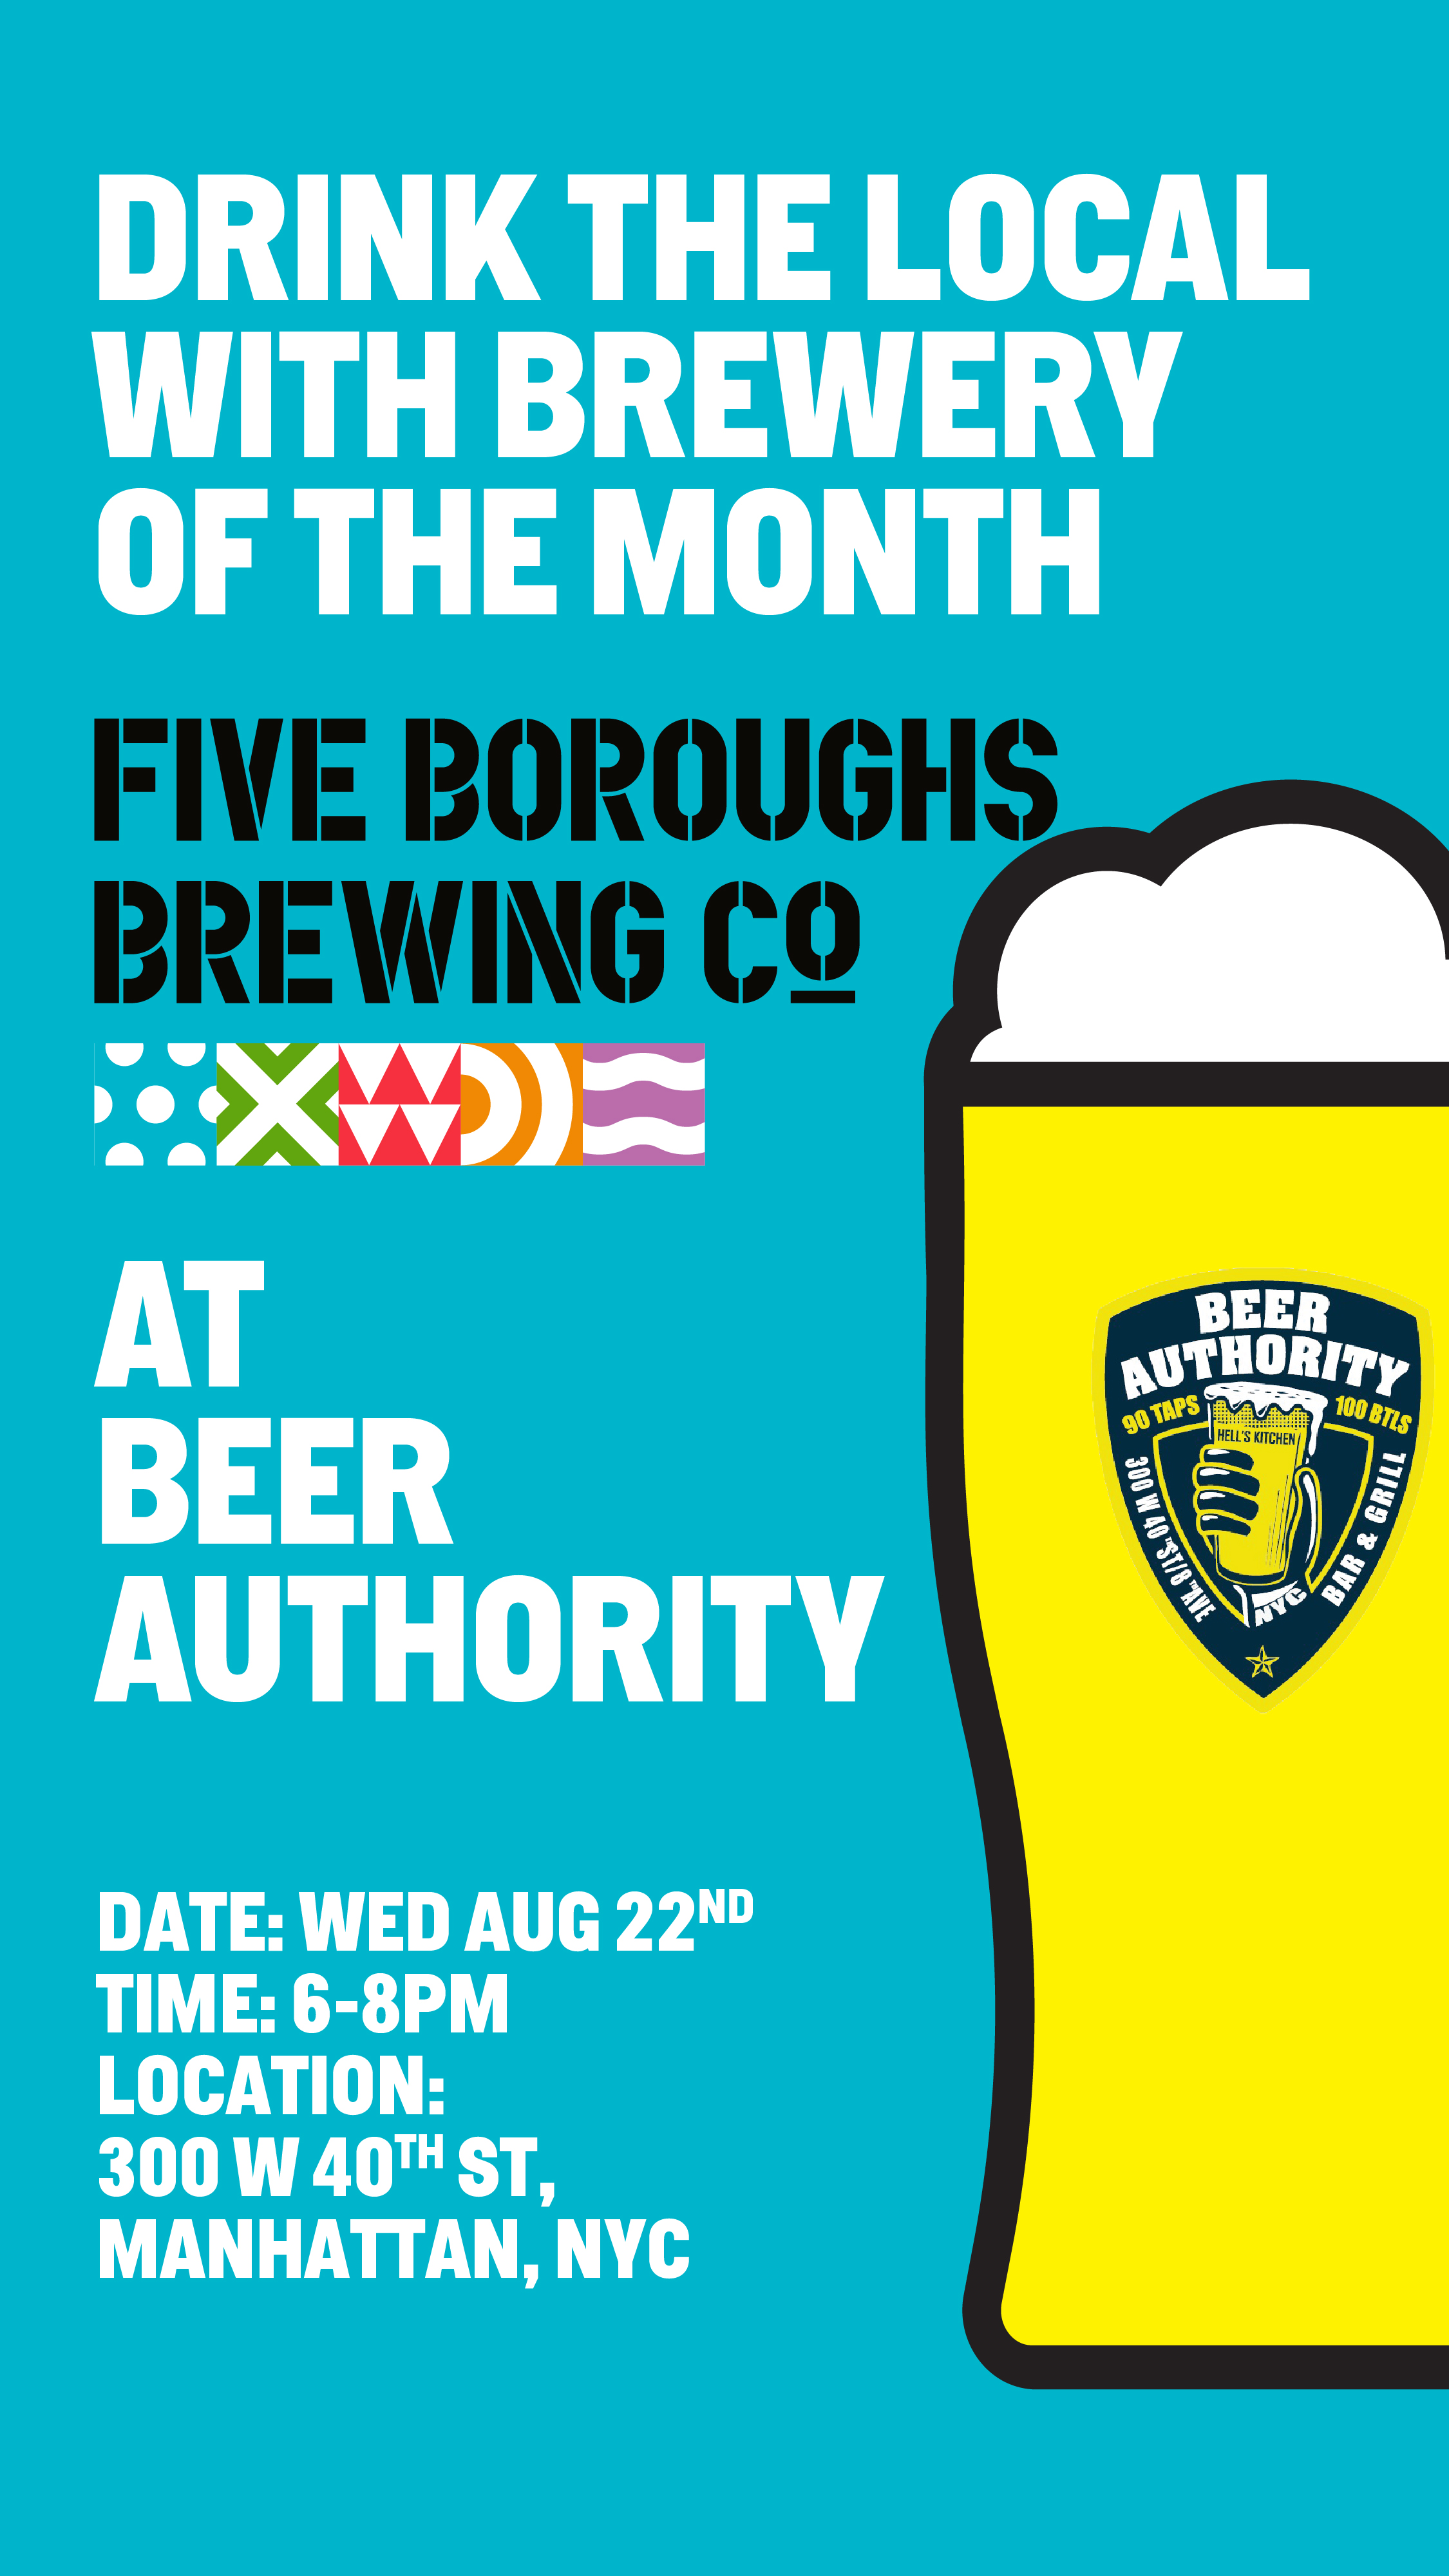 IG Story - Beer Authority and Five Boroughs-01.jpg